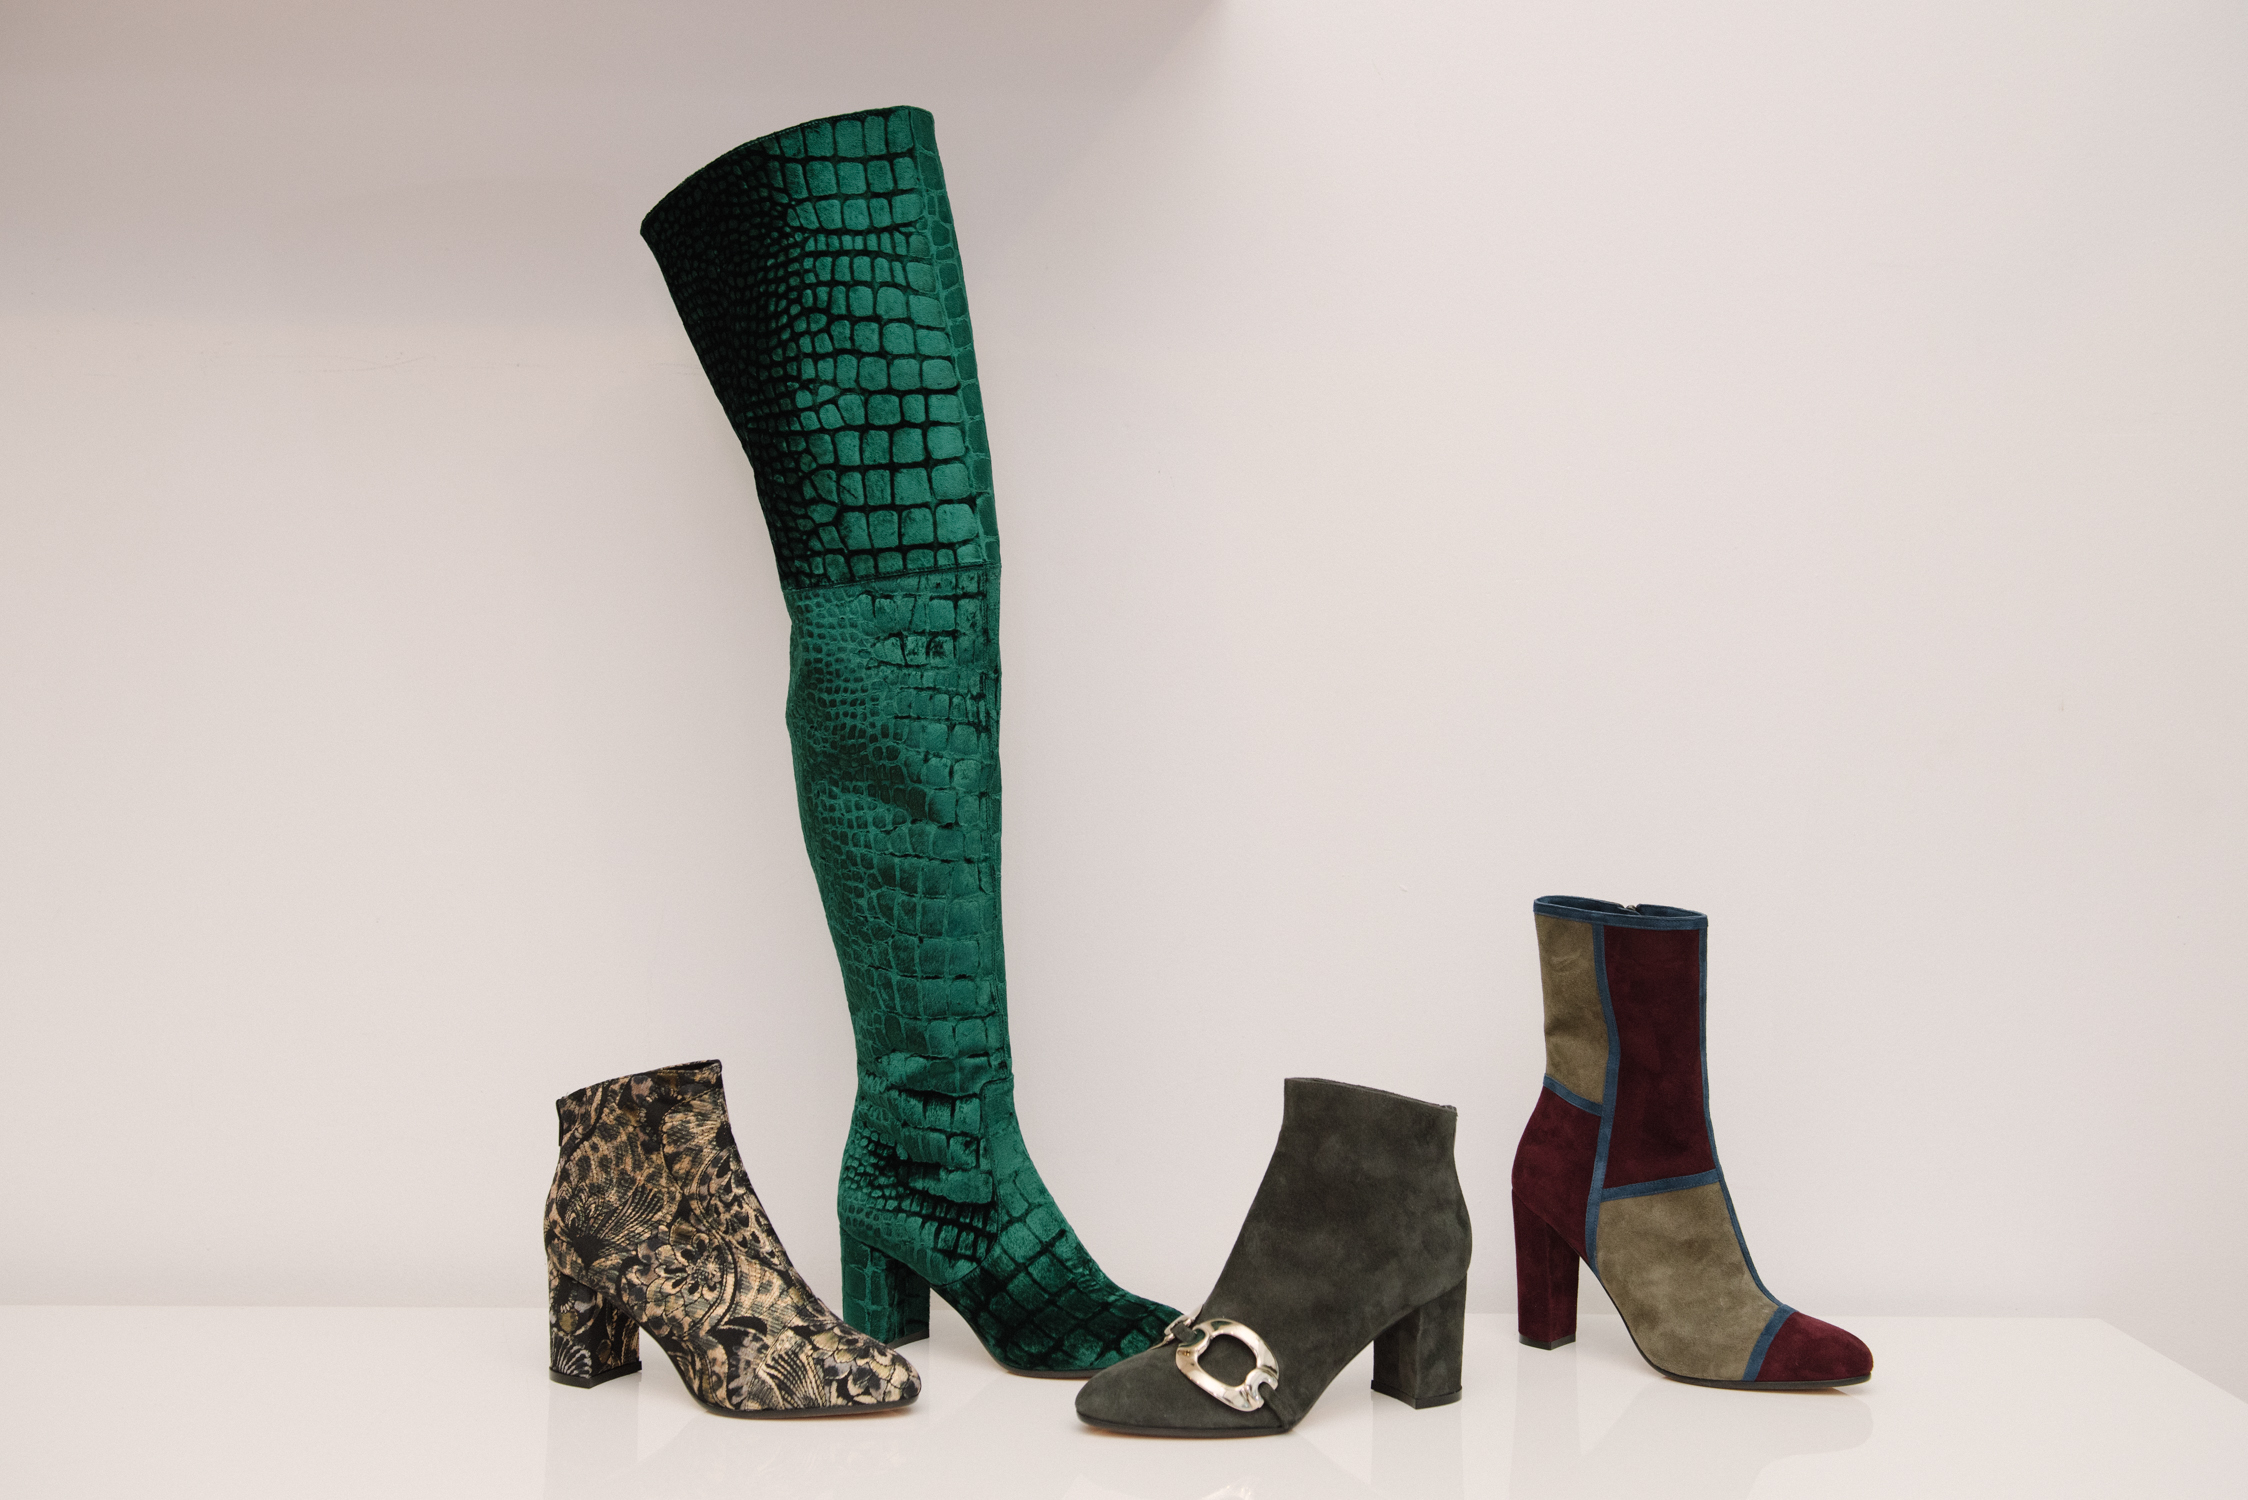 Boots from Jean Michel Cazabat Fall Collection